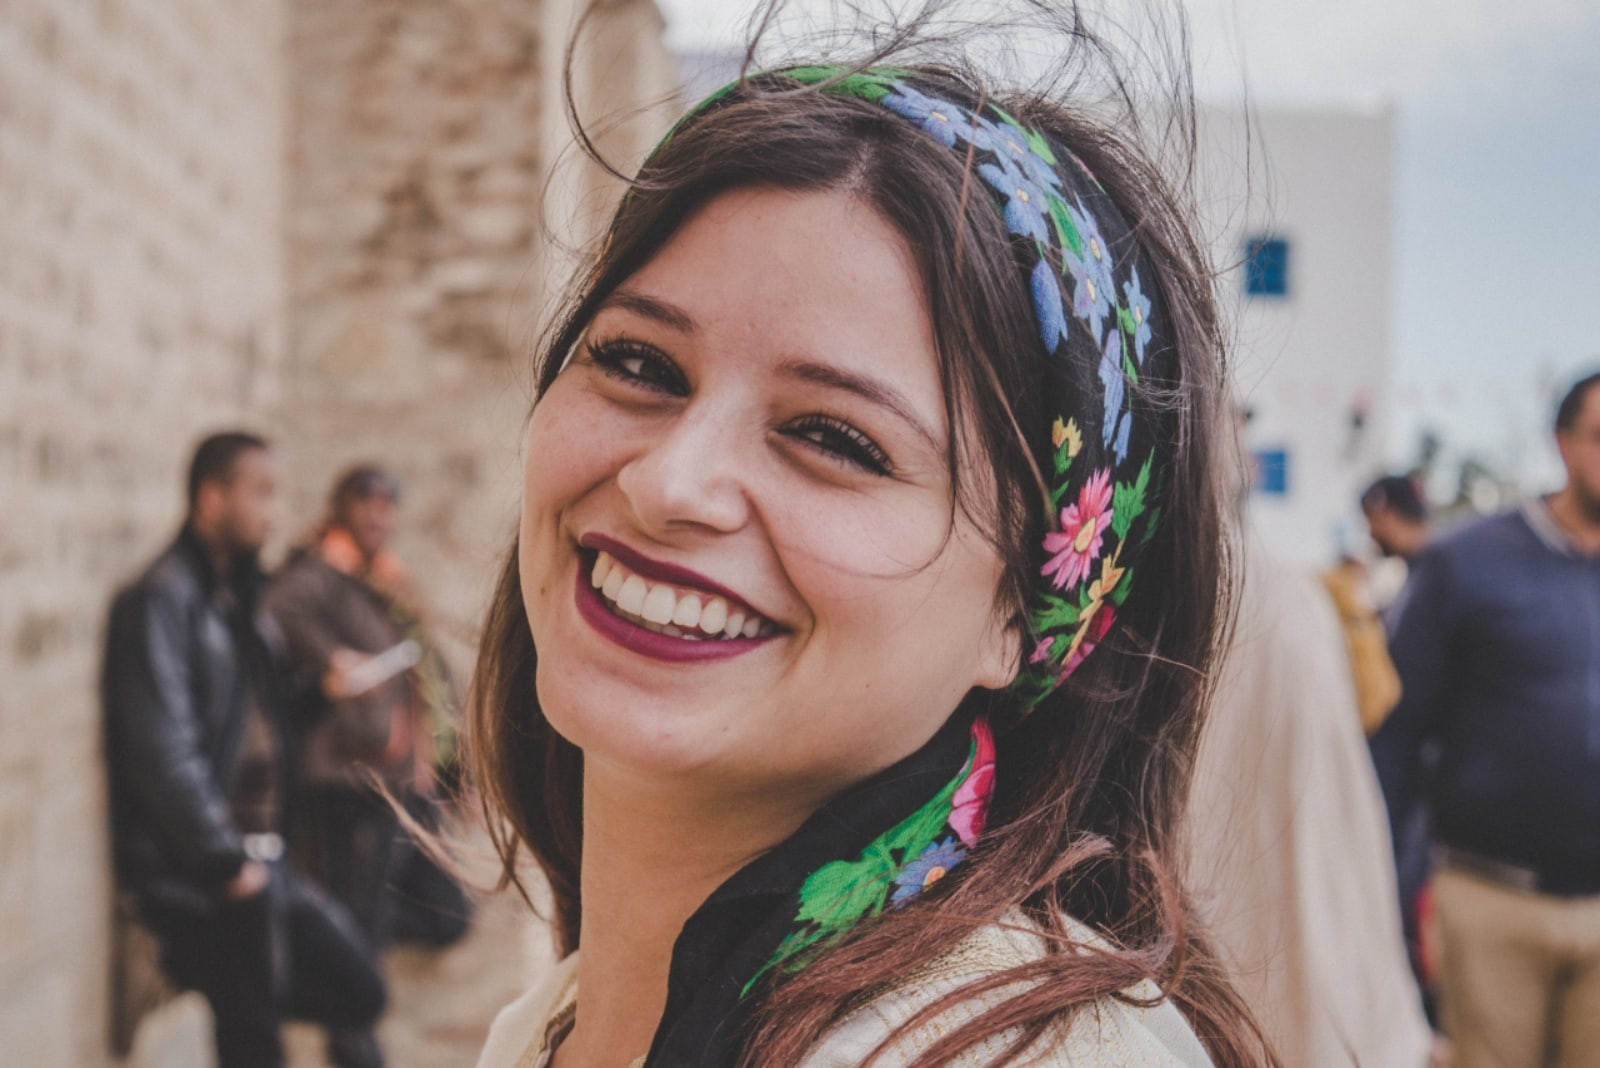 woman with colorful head scarf smiling